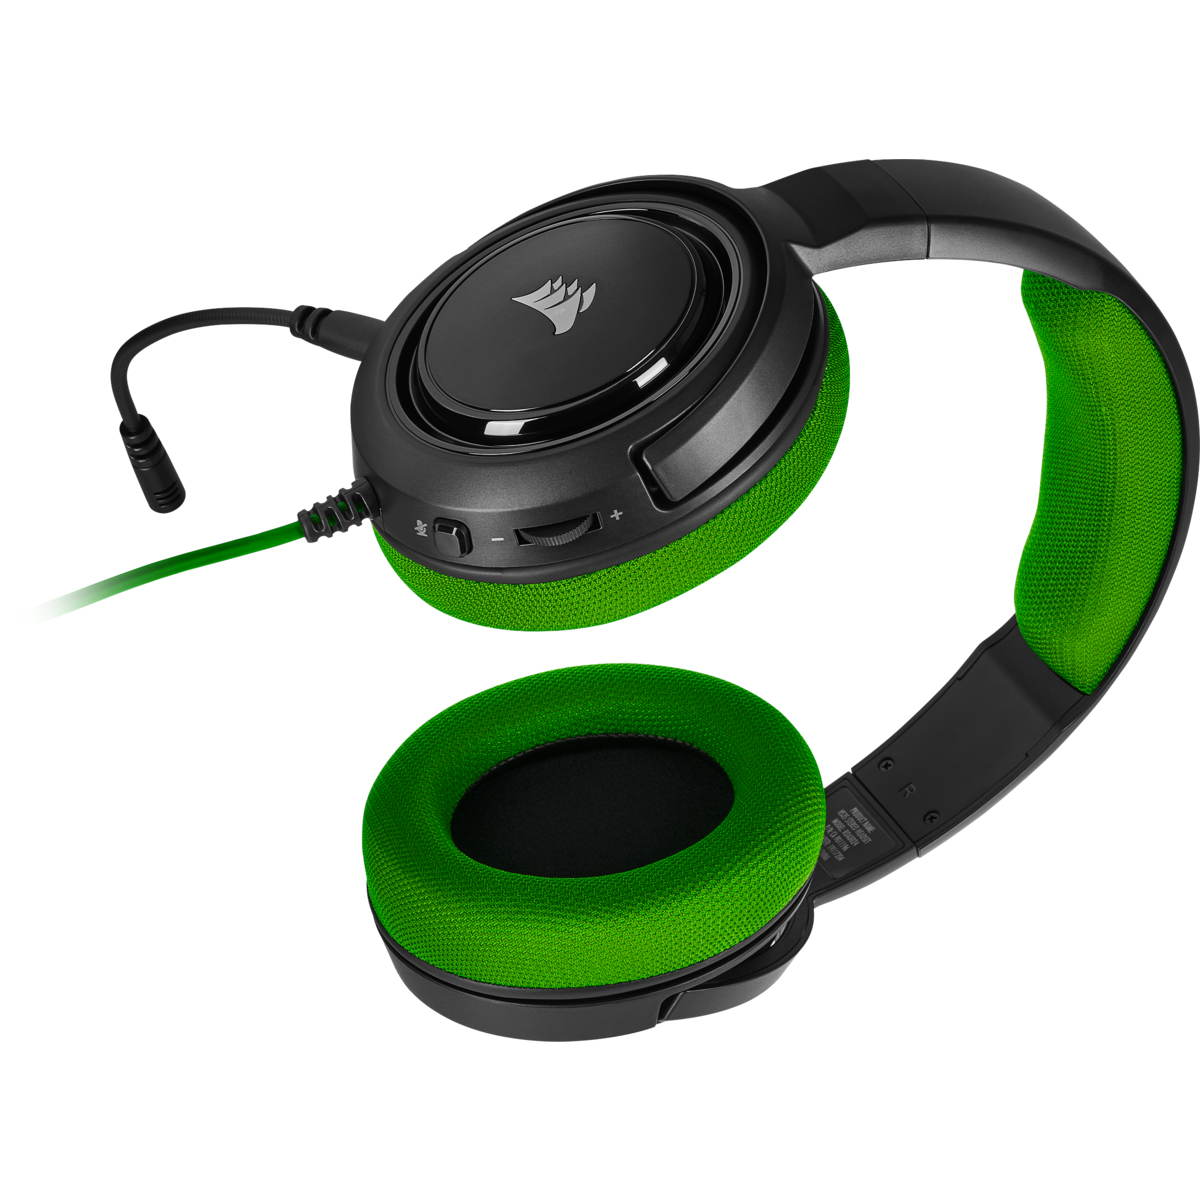 Stereo Gaming Headset Hs35 - Green